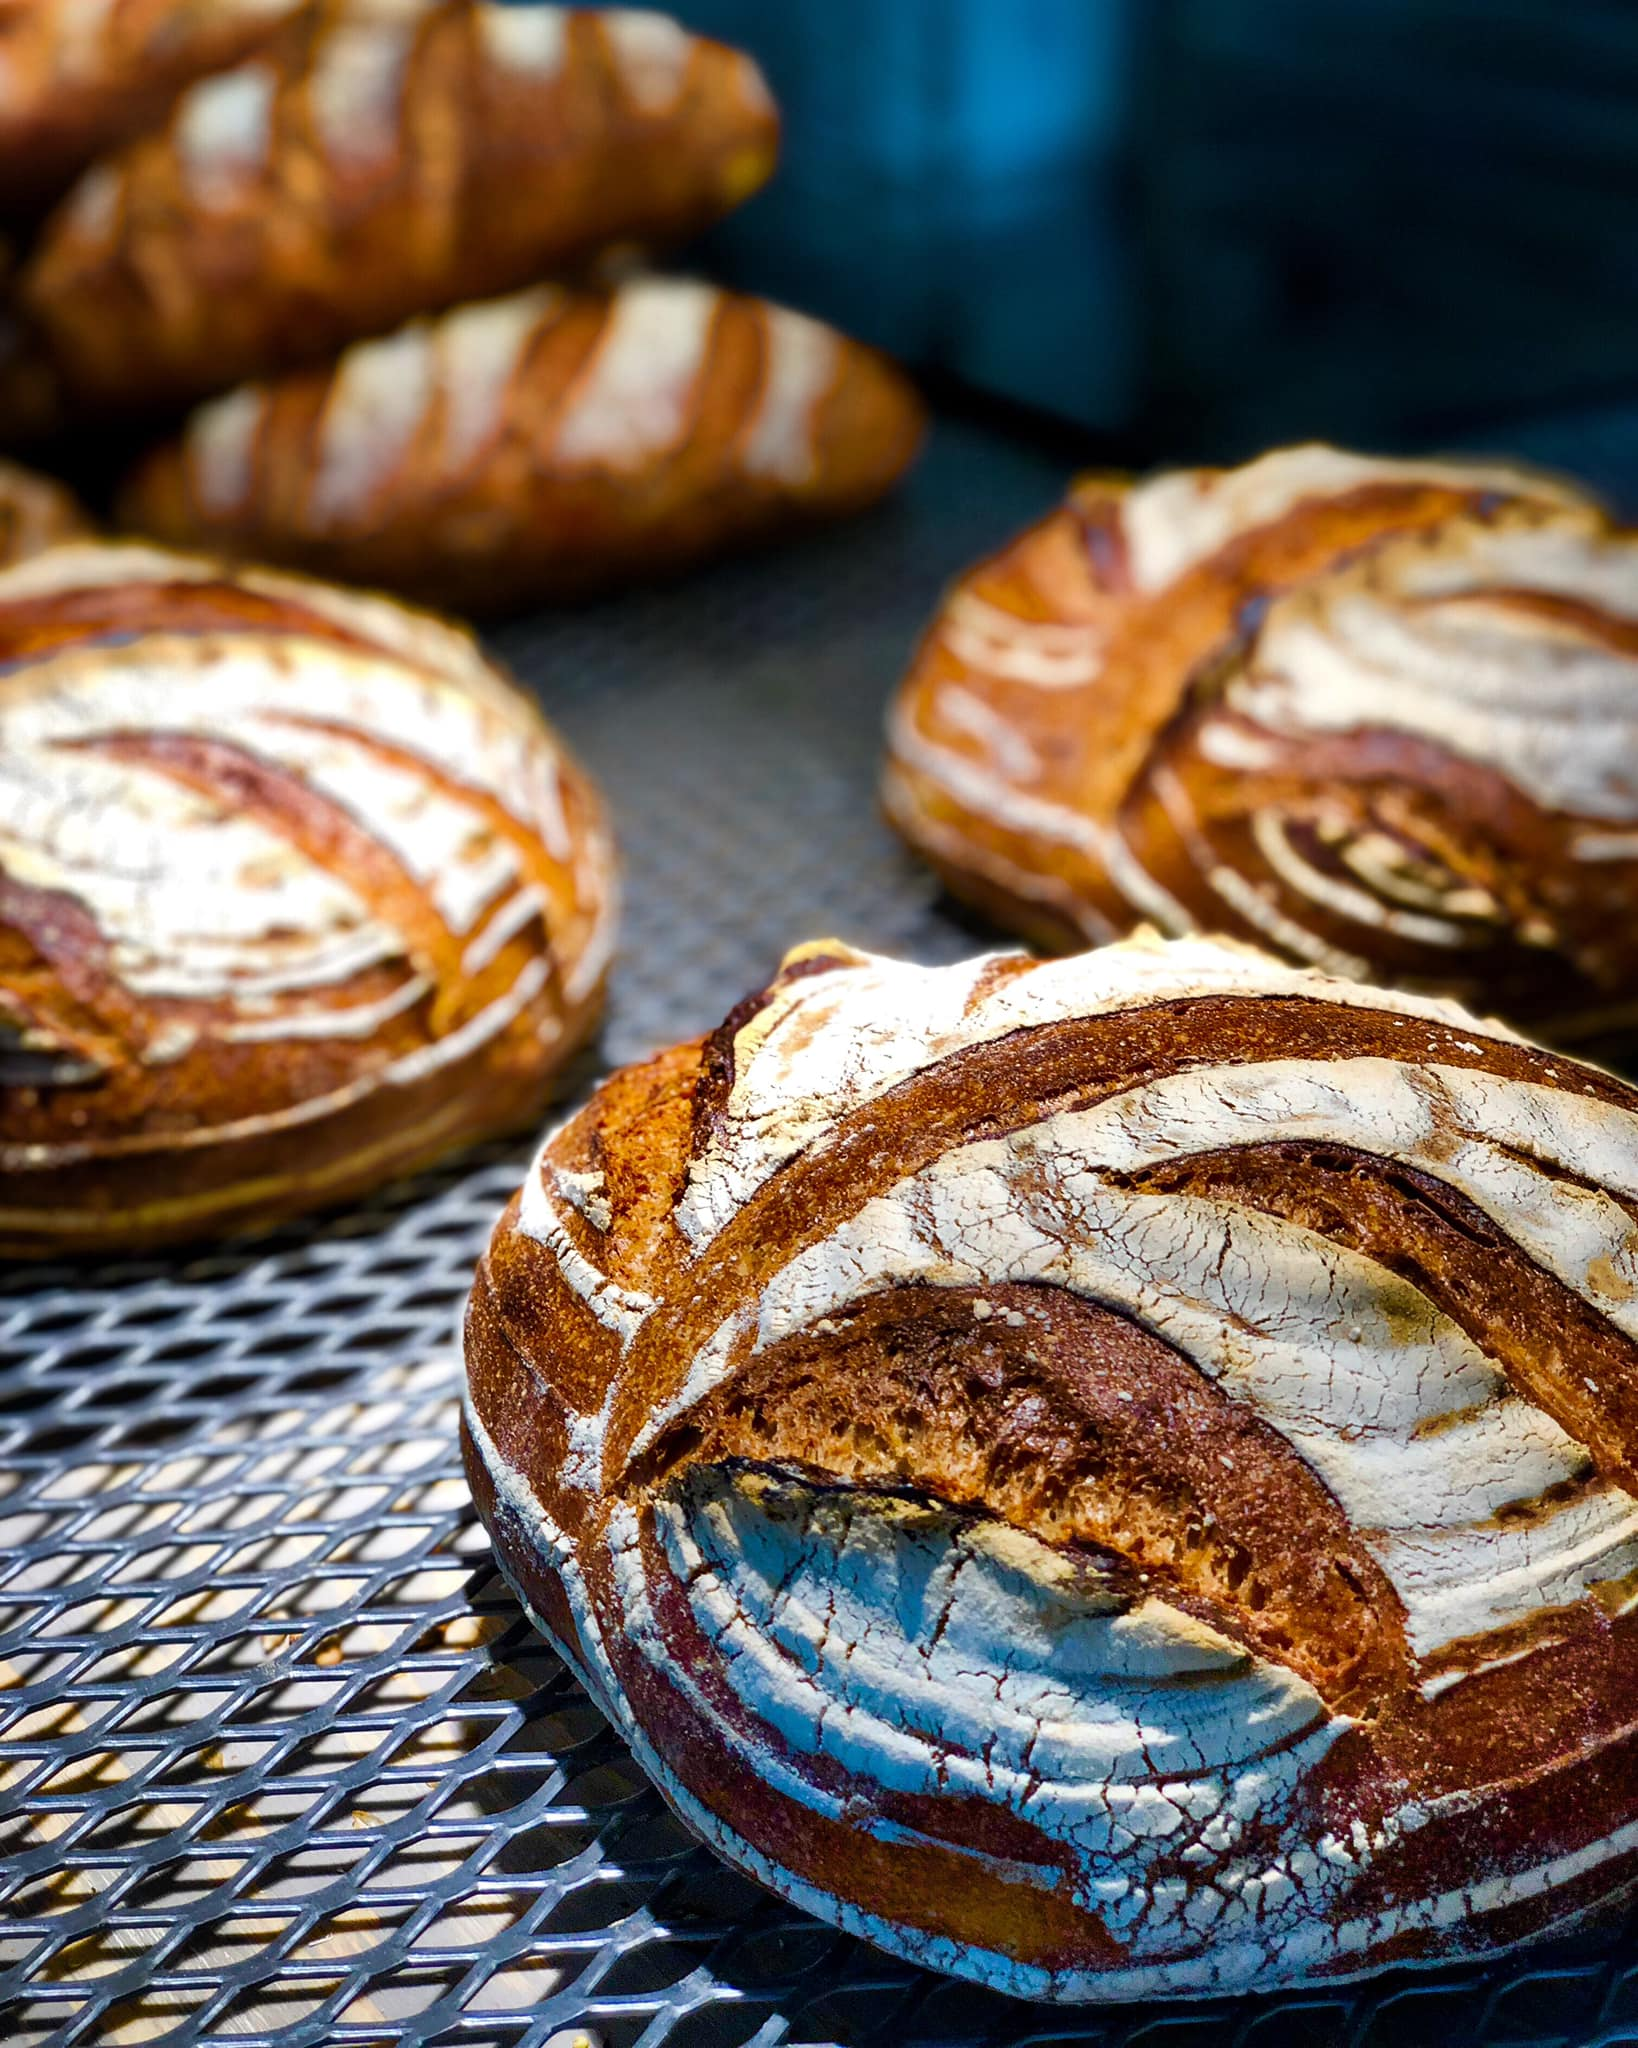 Brilliant Montreal Bakery Opens in Laval With Much More Than Just Pastry